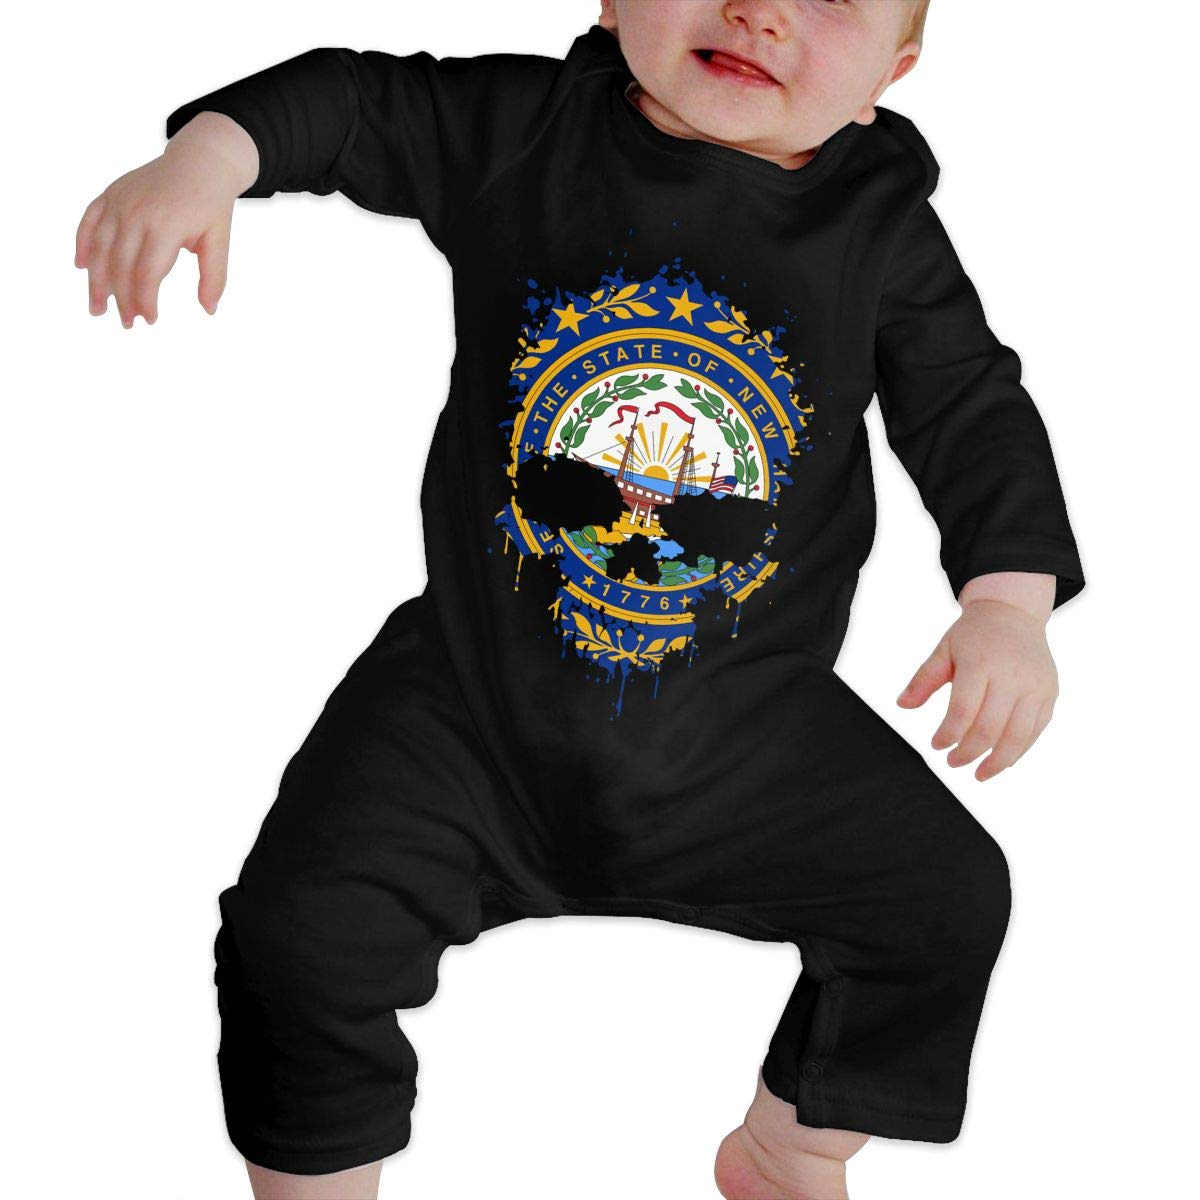 Mri-le1 Baby Girls Jumpsuit New Hampshire State Flag Splatter Skull Toddler Jumpsuit